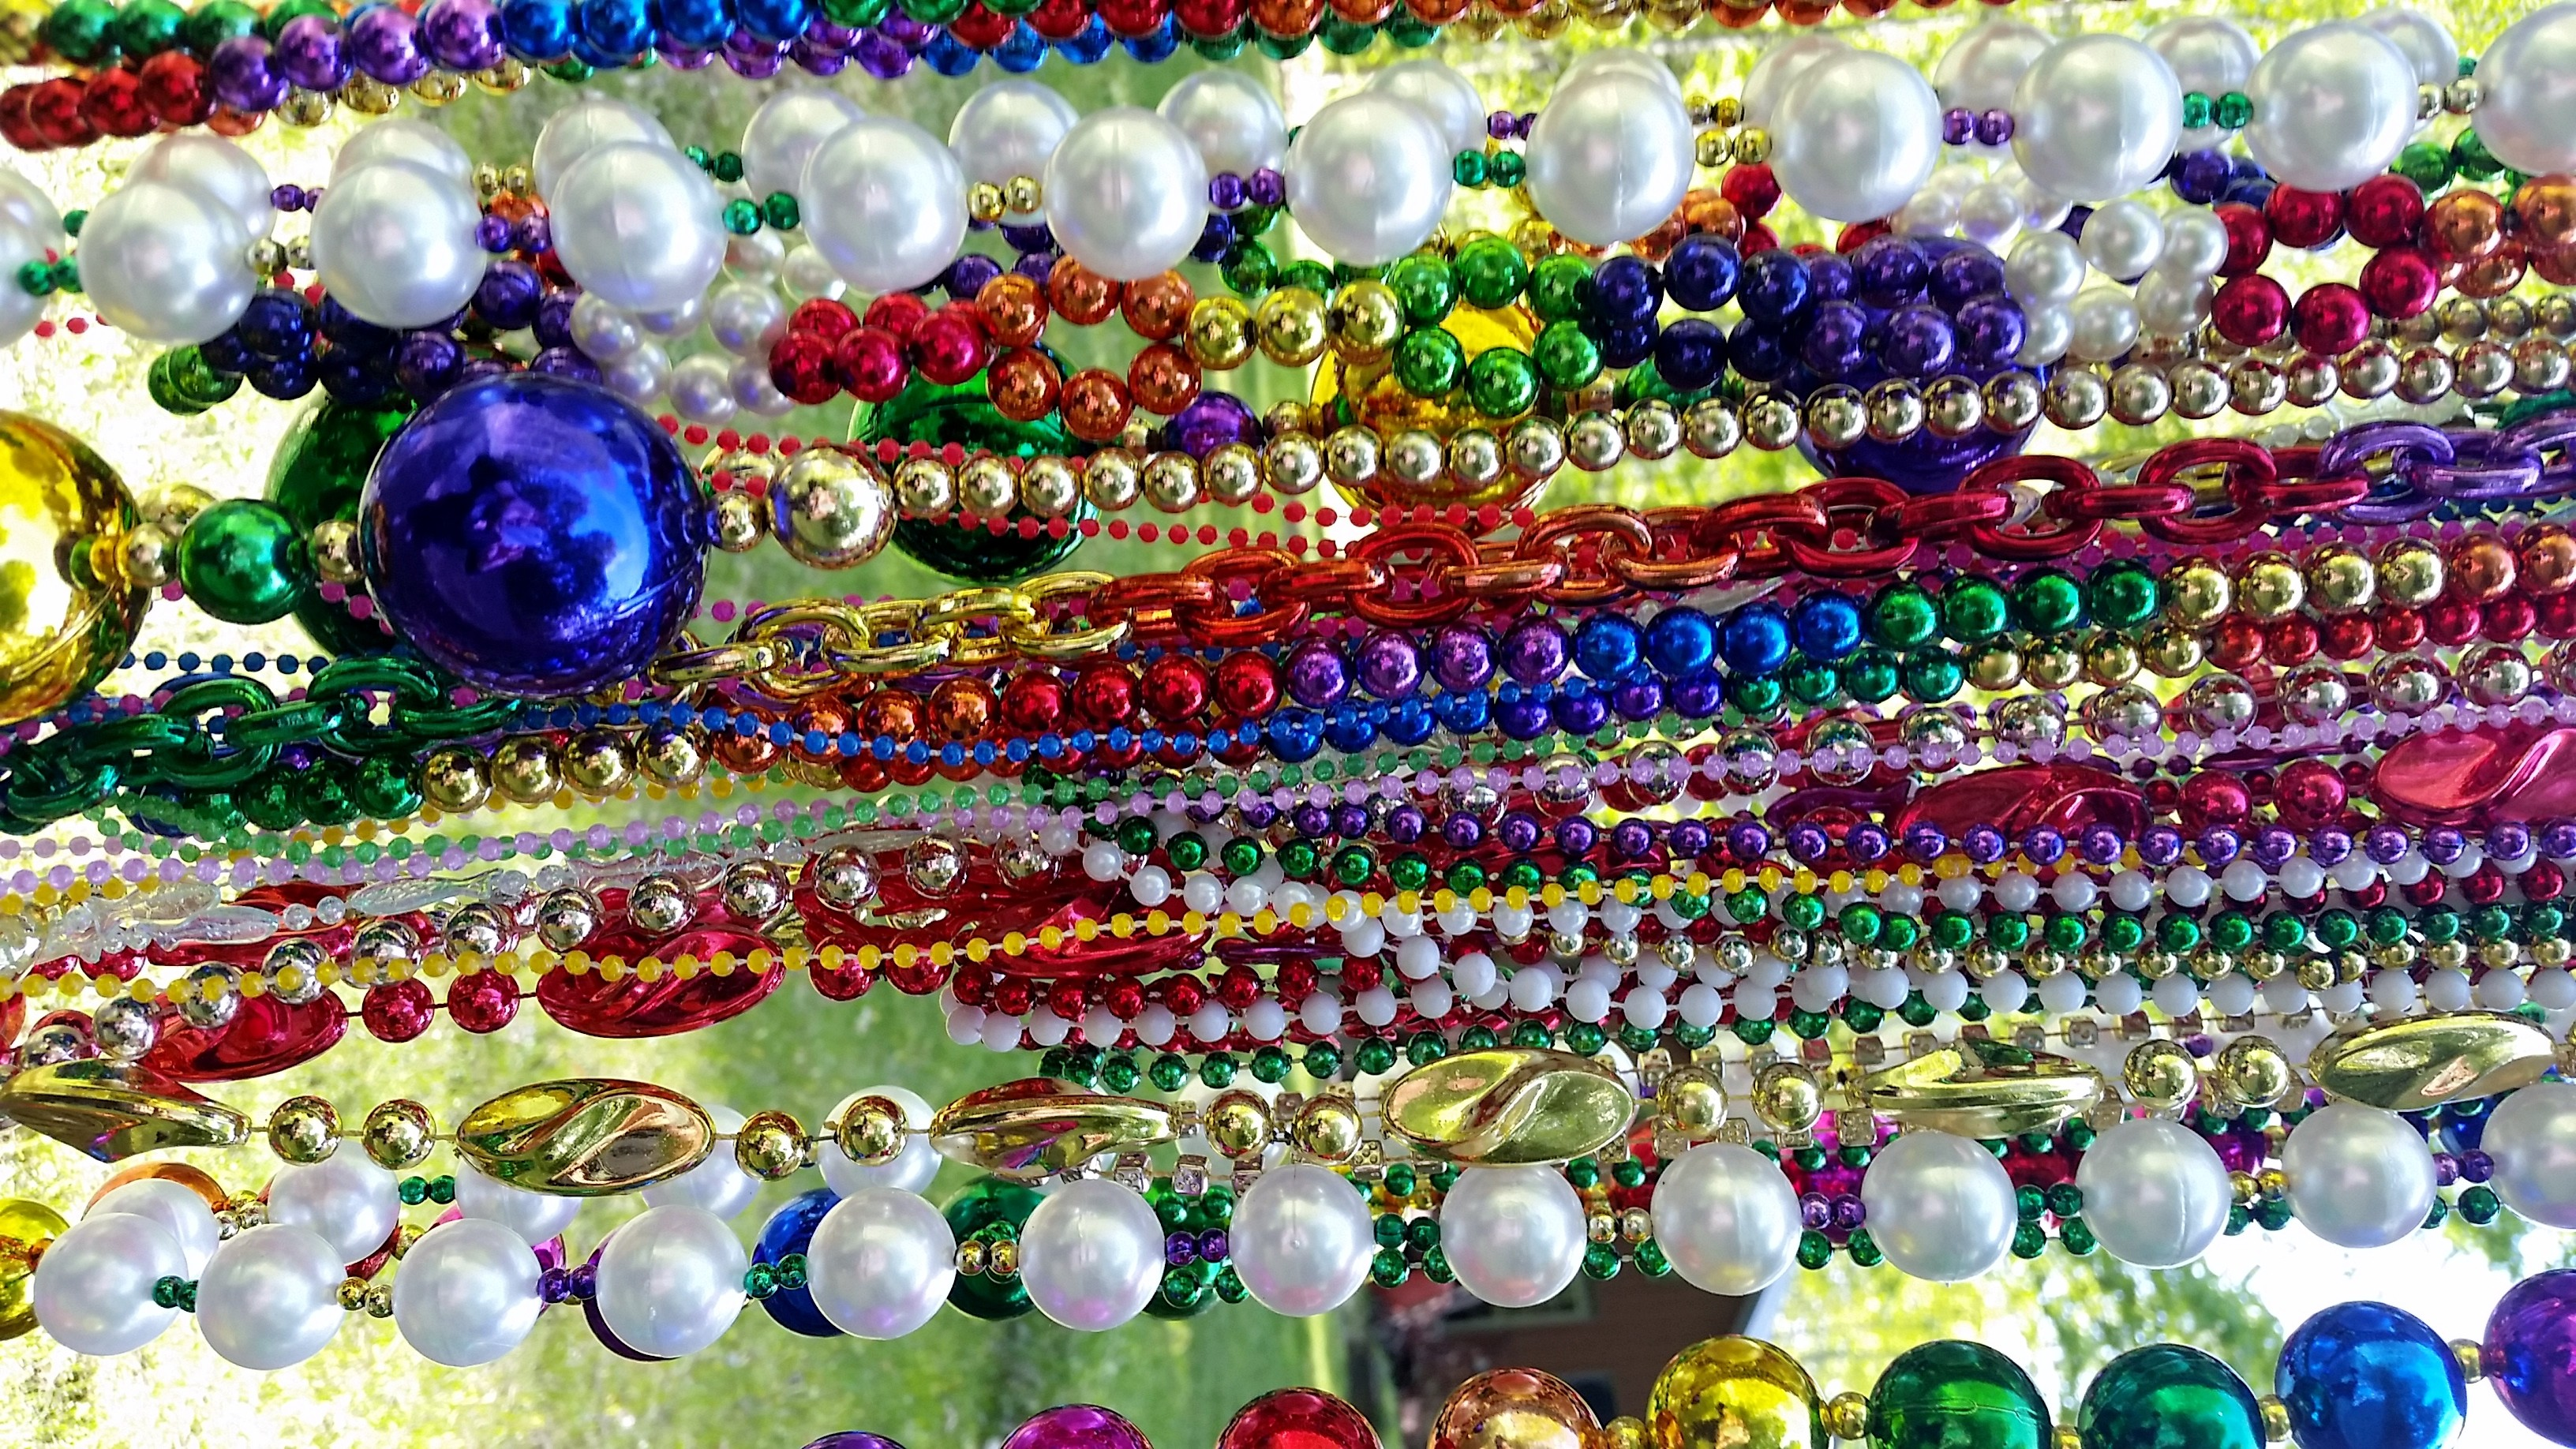 mardi what articles carnival profile gras beads the mask are colors of american